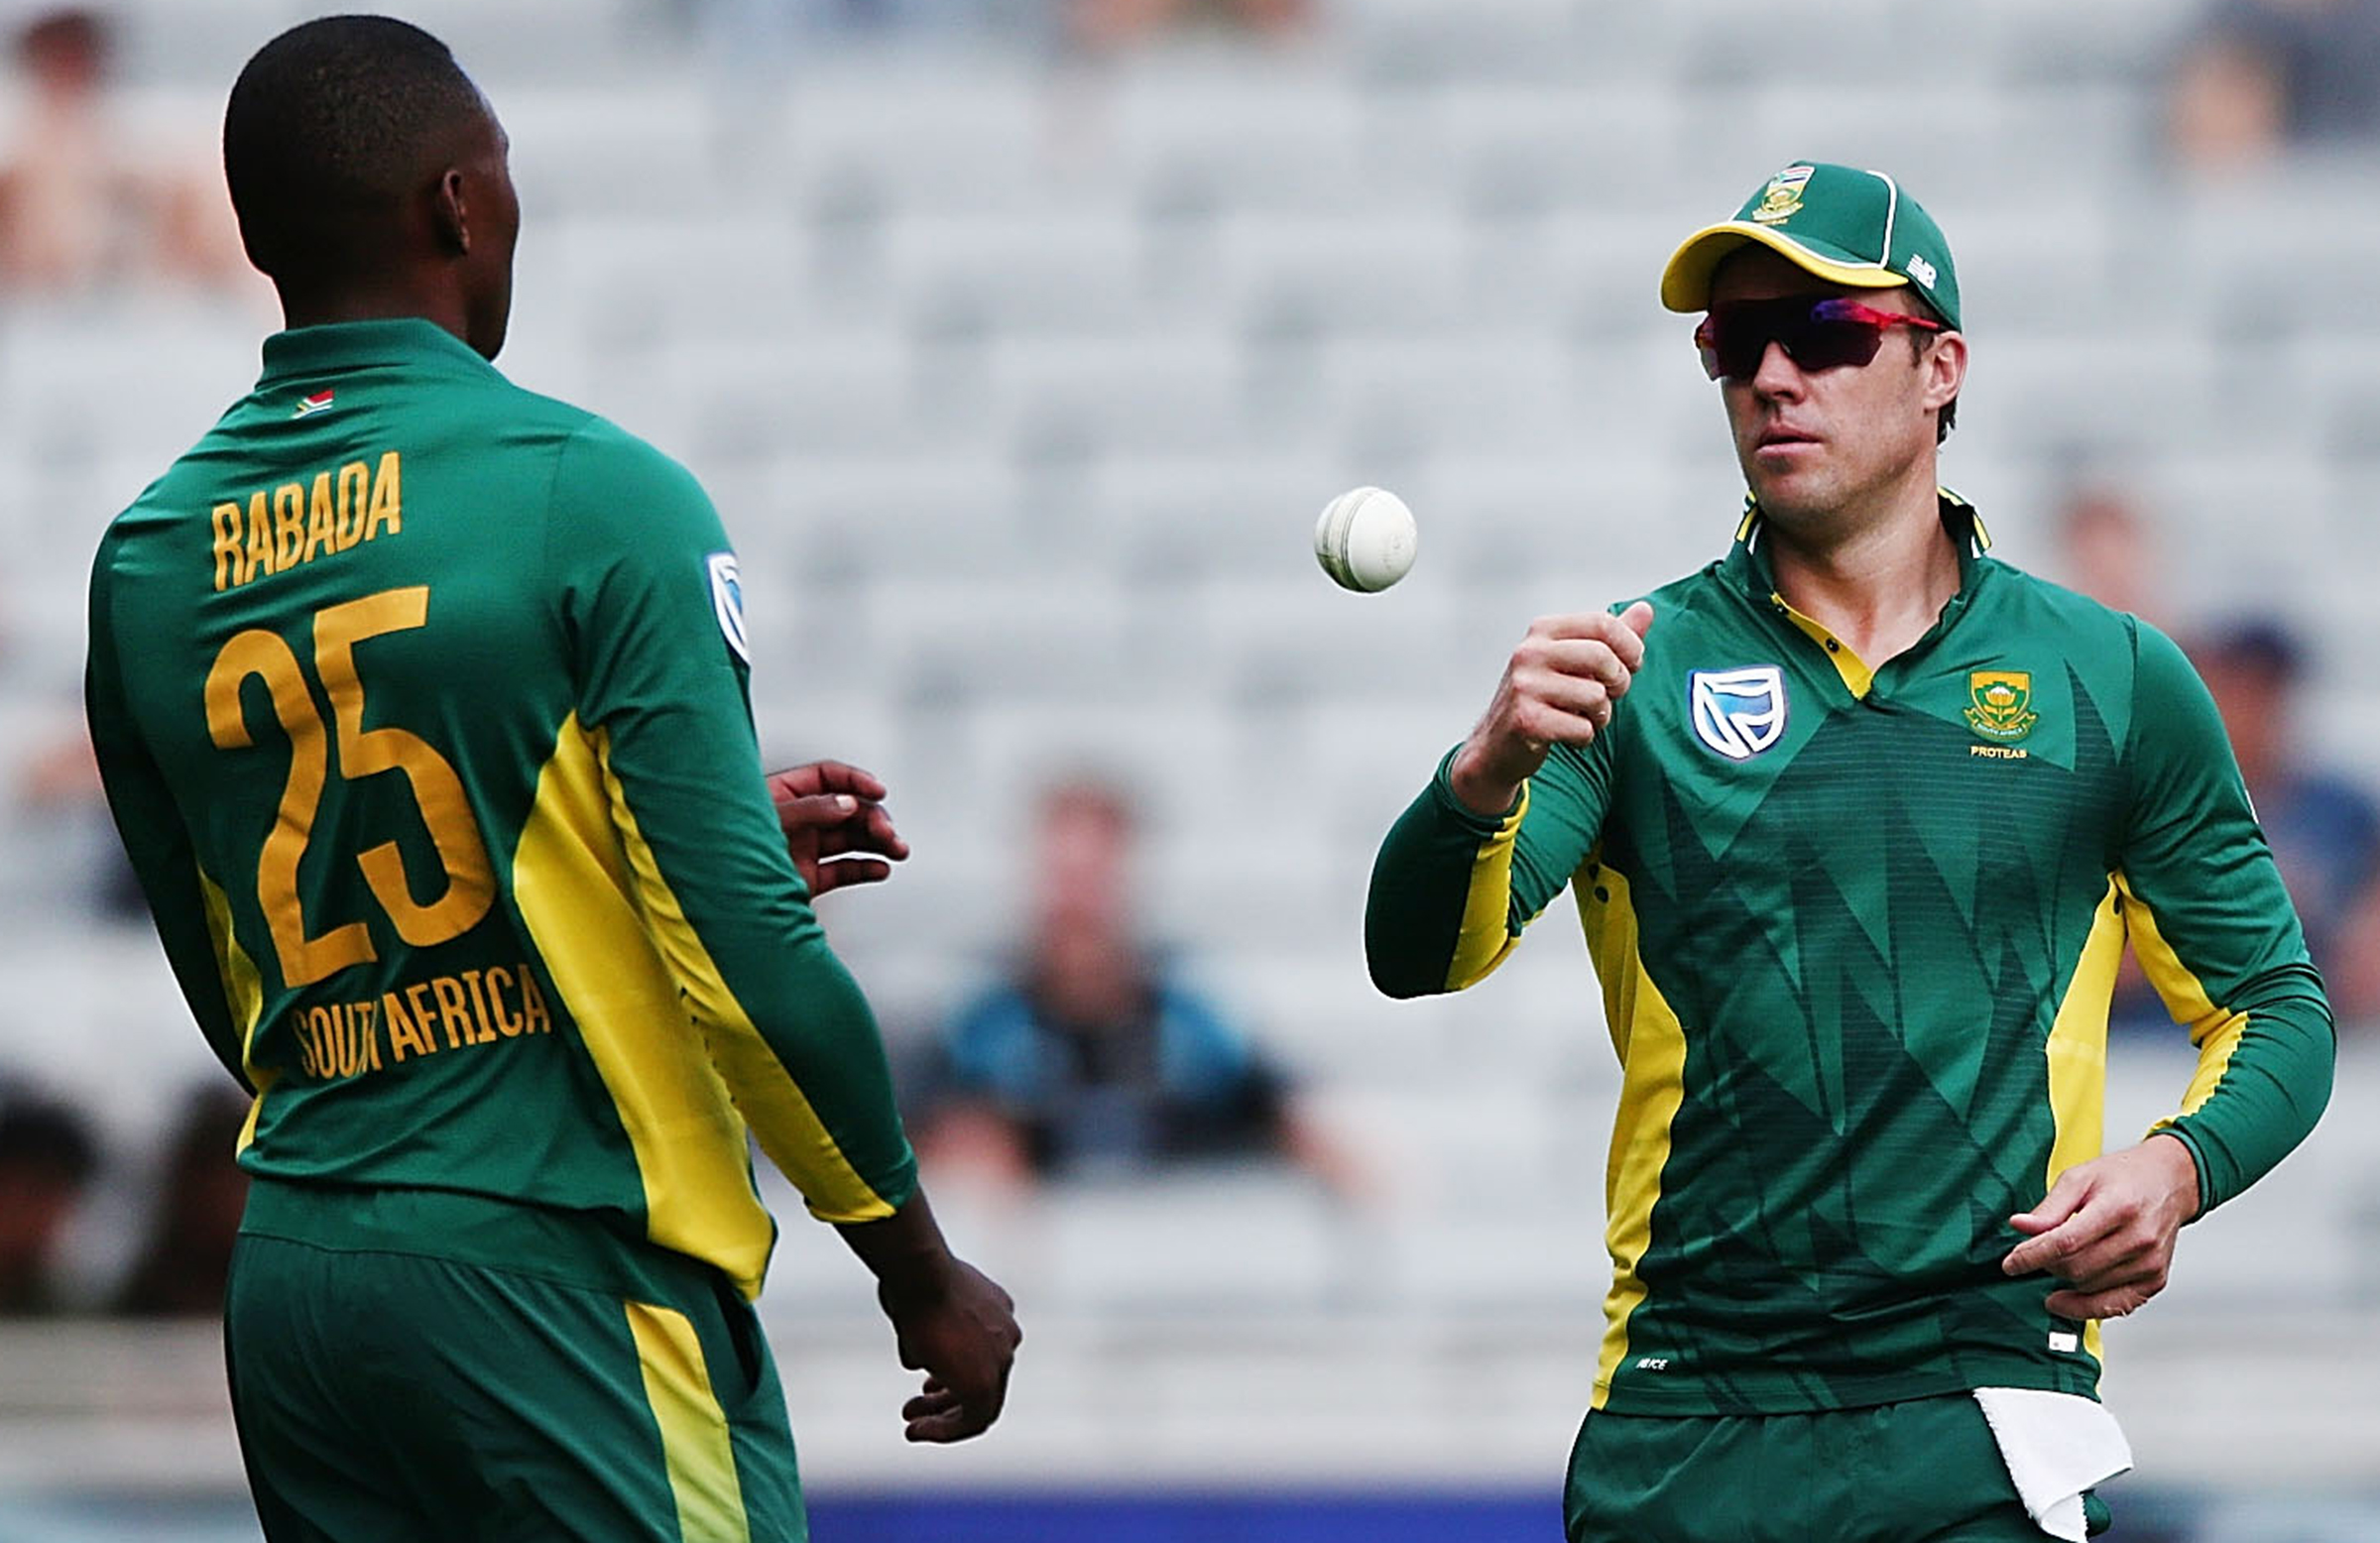 Cricket South Africa launches T20 Global League, announces names of teams owners